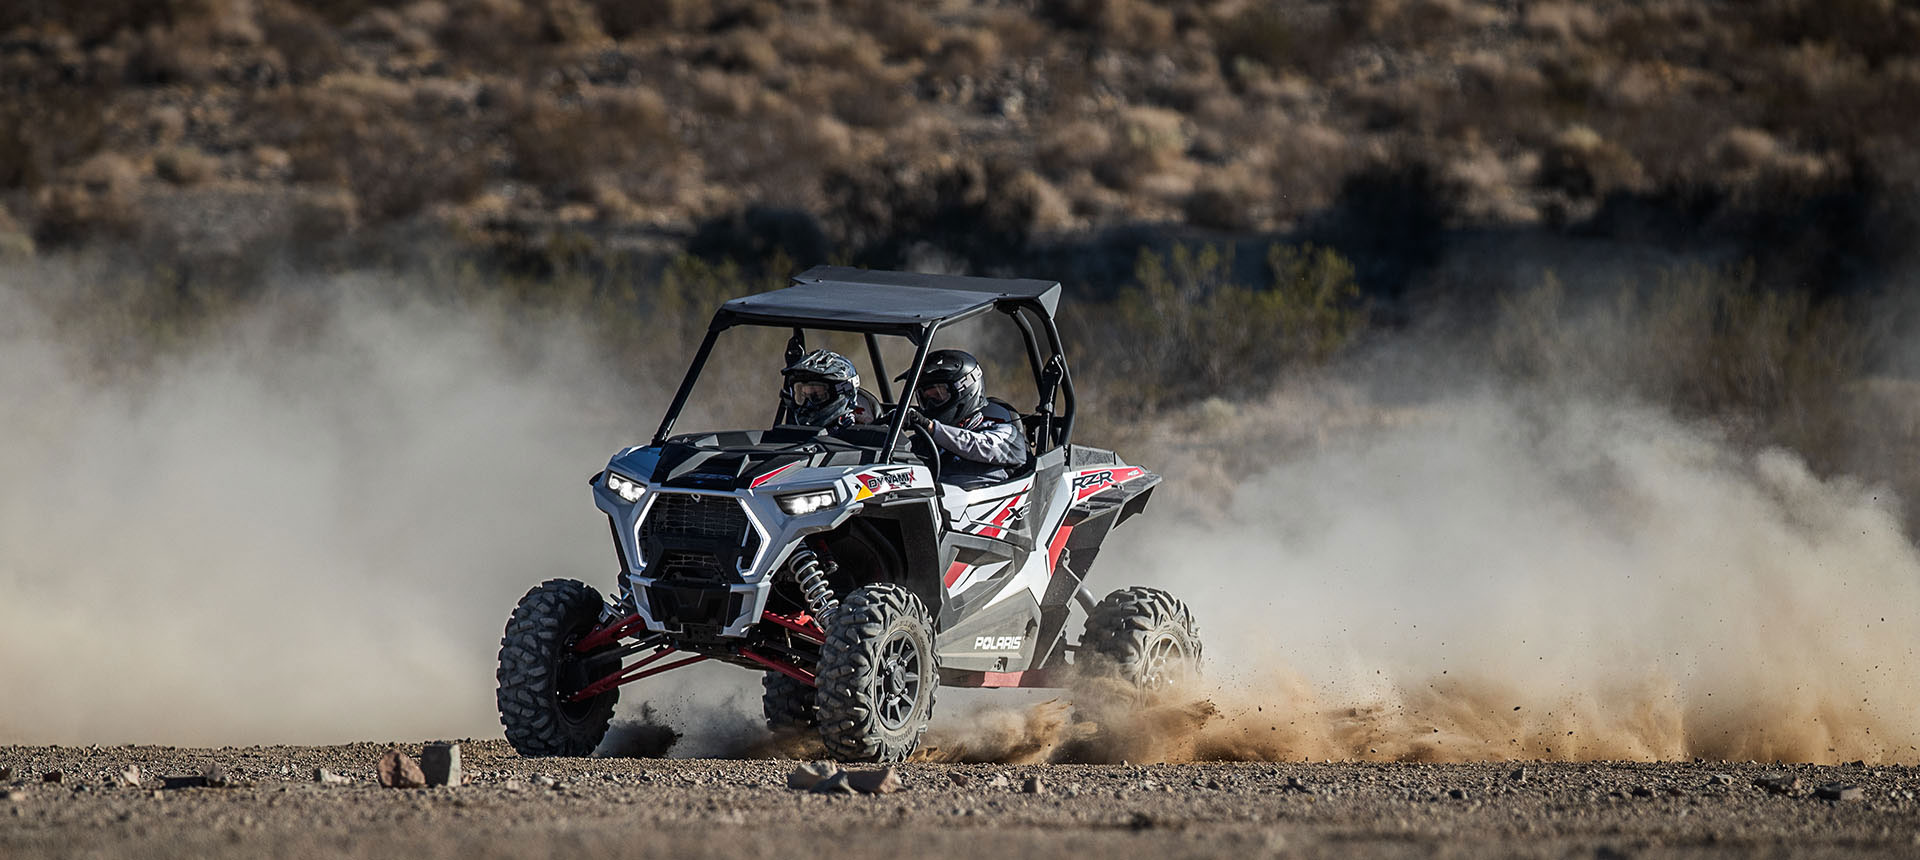 2019 Polaris RZR XP 1000 in Stillwater, Oklahoma - Photo 2